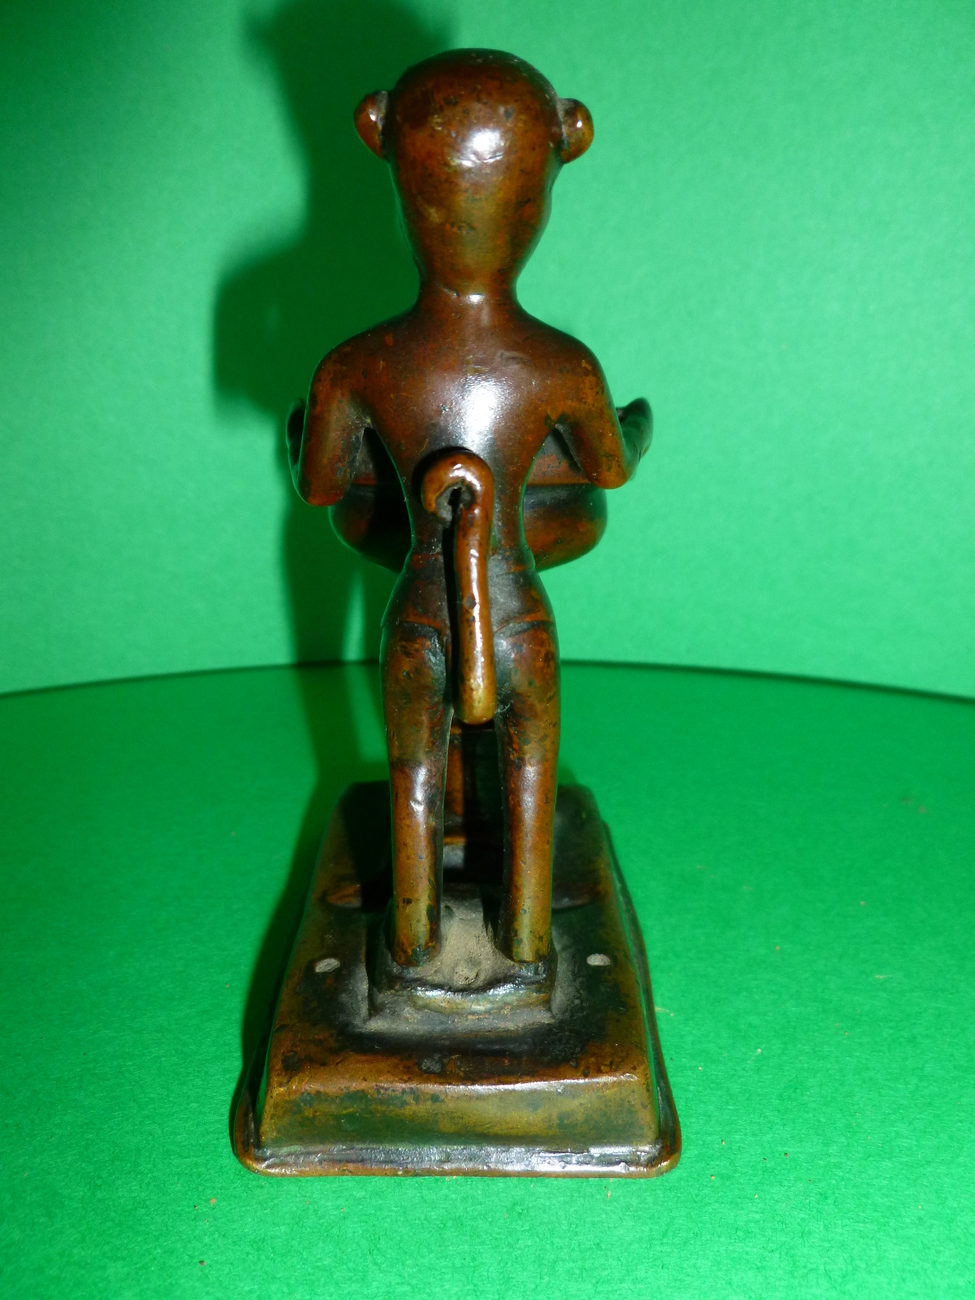 Antique Bronze Oil Lamp With Monkey From India C.1830 - 1840